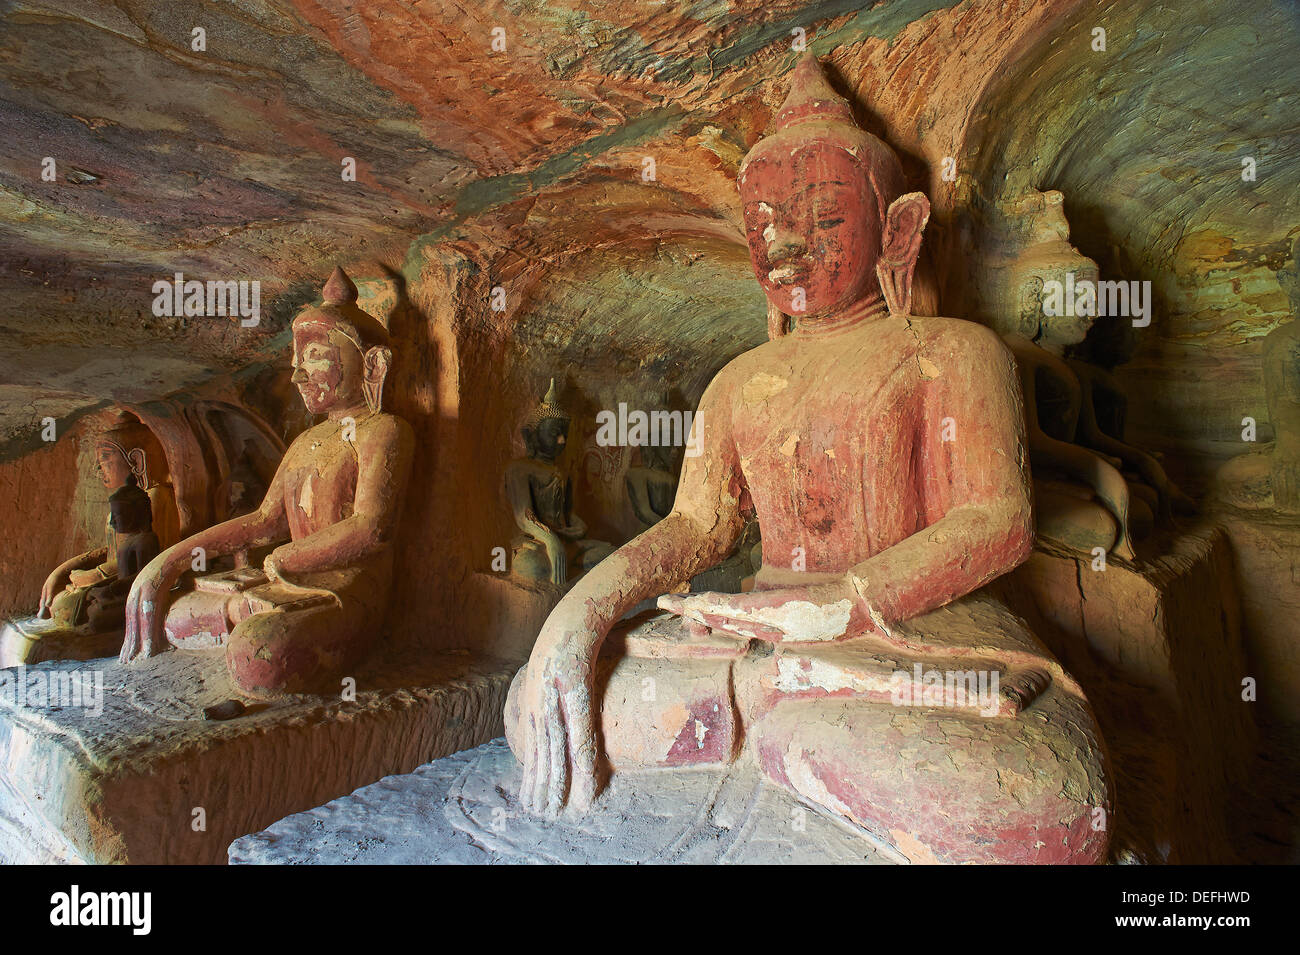 Buddha statues in the Po Win Daung Buddhist cave, dating from the 15th century, Monywa, Sagaing Division, Myanmar (Burma), Asia - Stock Image